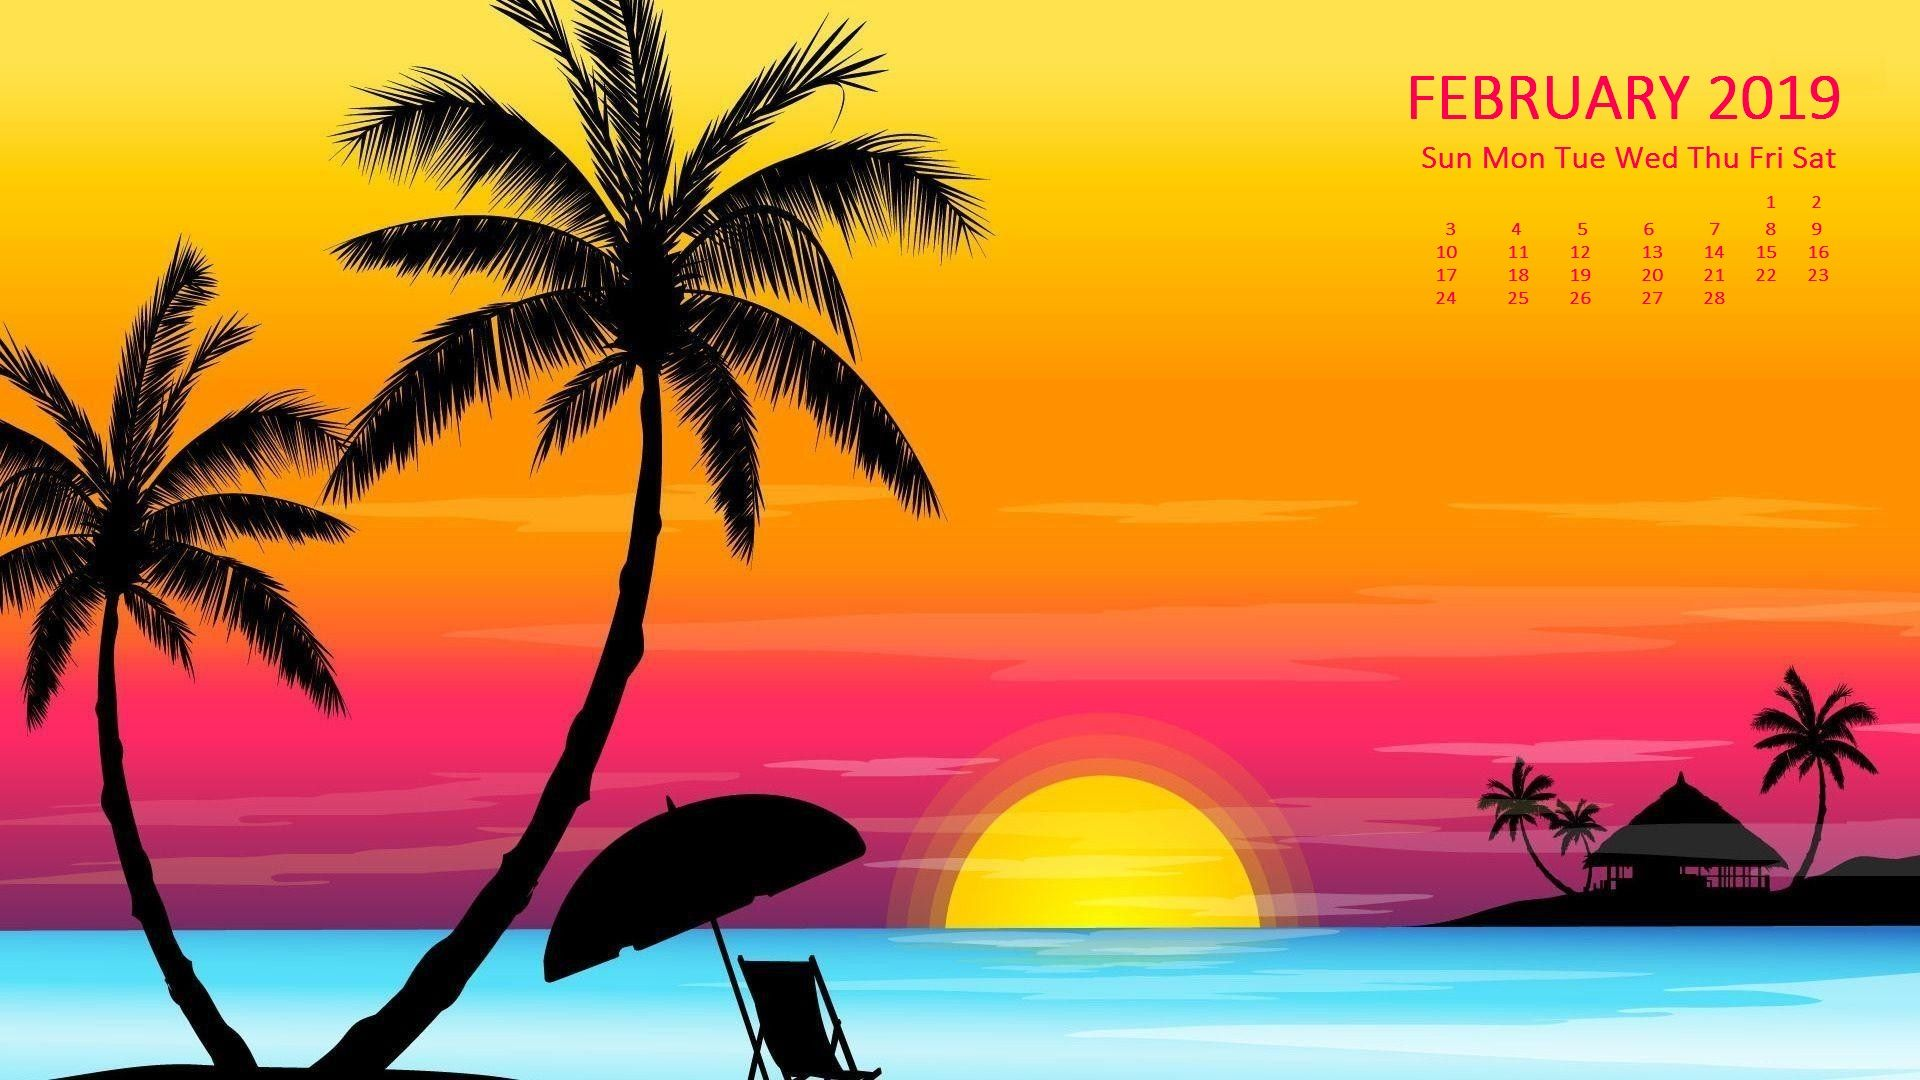 February 2020 Desktop Calendar Blue Jeans Beautiful February 2019 Smart Gadgets Background Wallpaper With